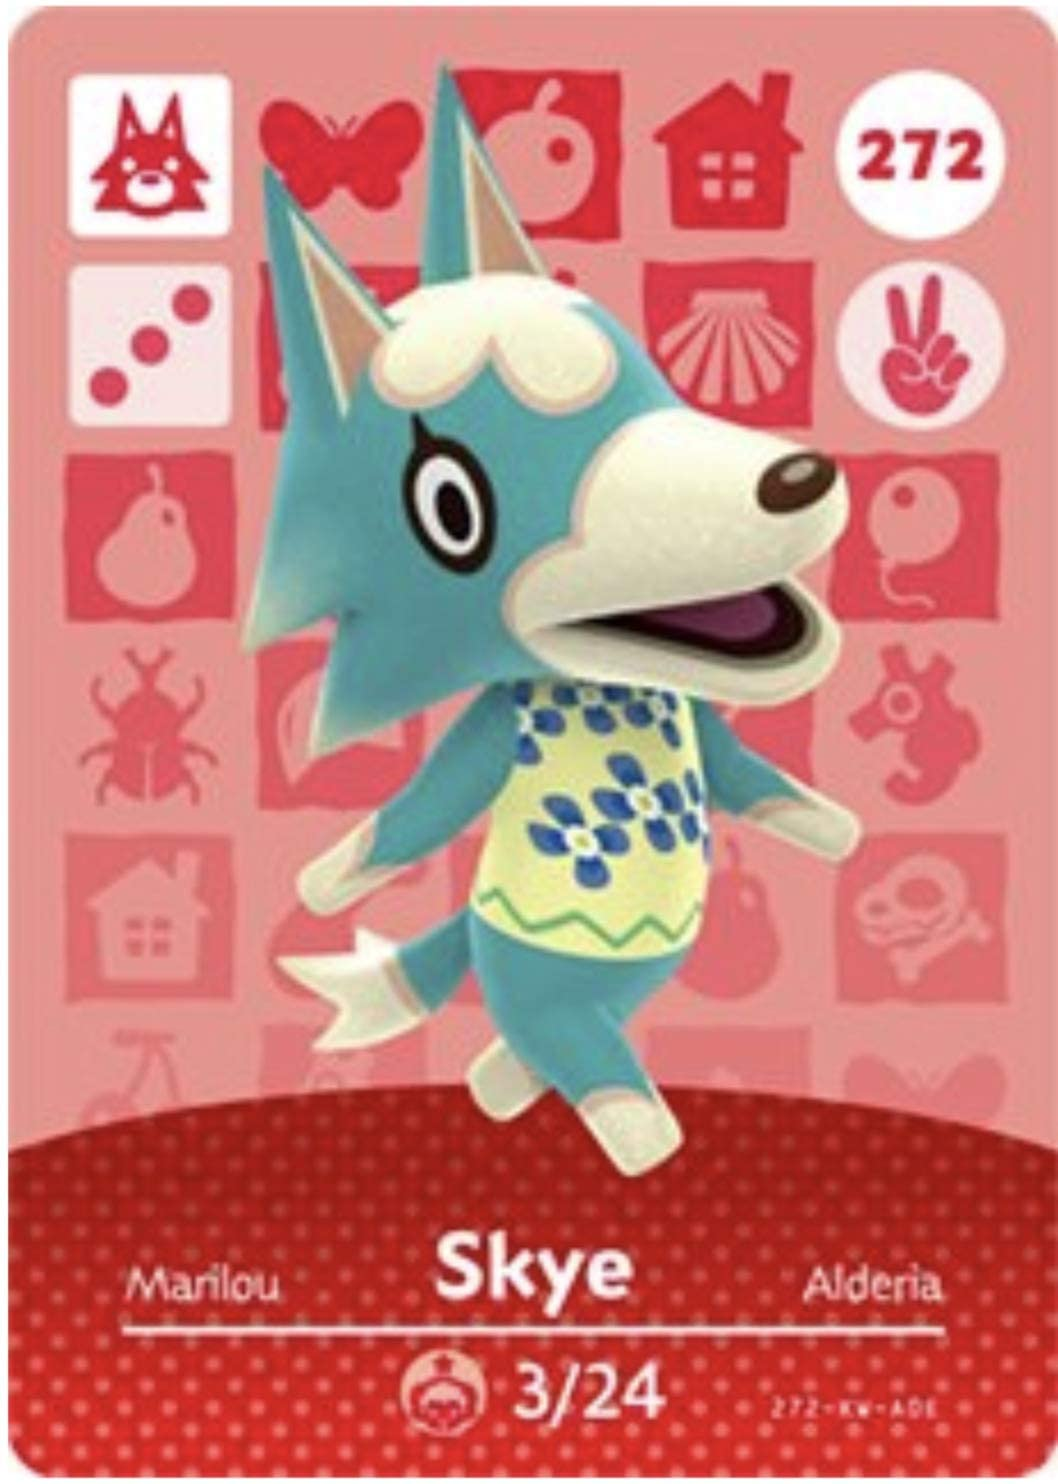 No.272 Skye Animal Crossing Villager Cards Series 3. Third Party NFC Card. Water Resistant